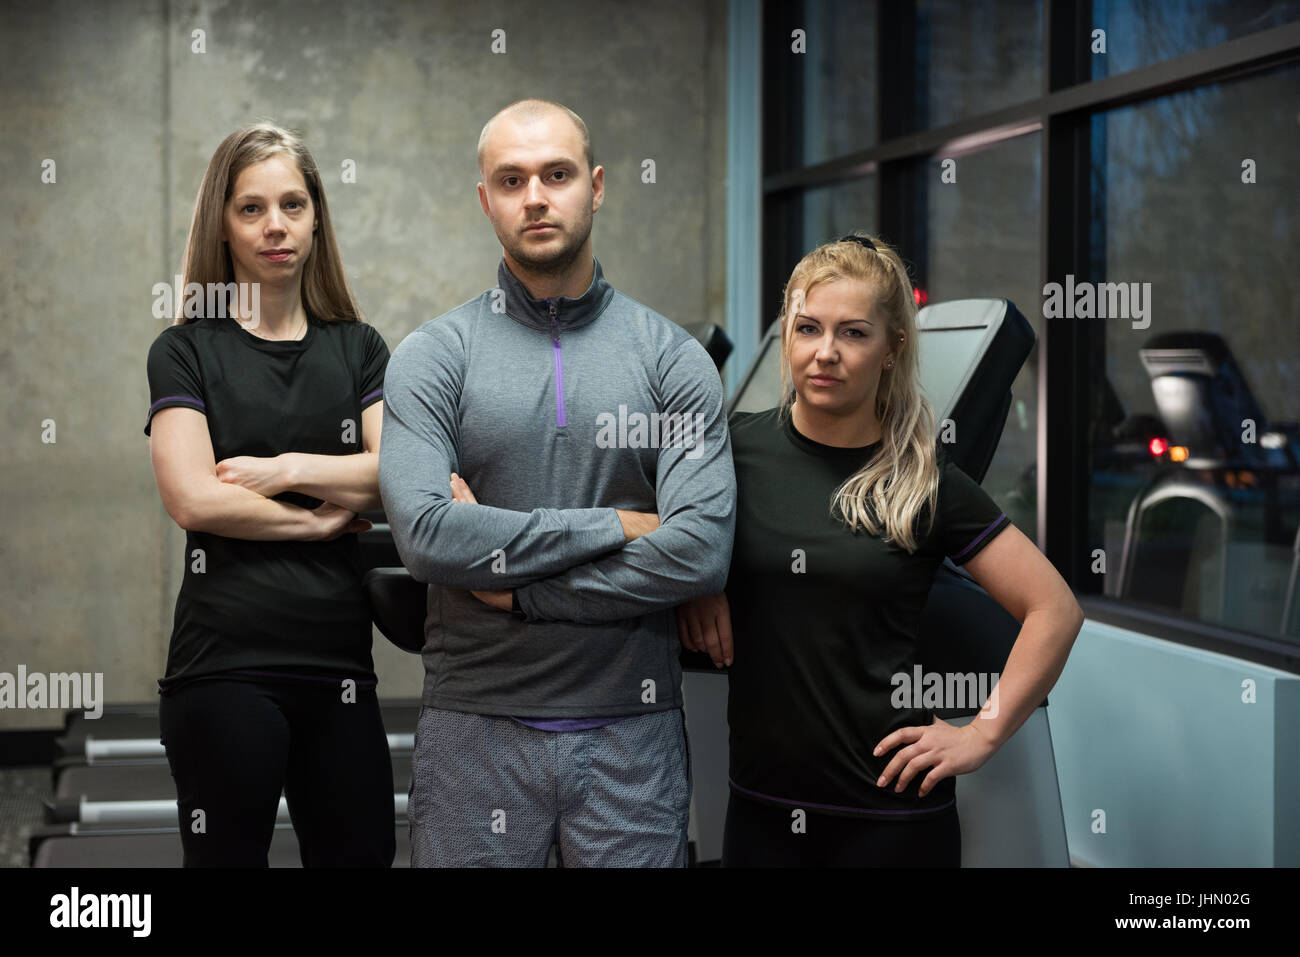 Portrait of young friends standing against treadmills at gym - Stock Image